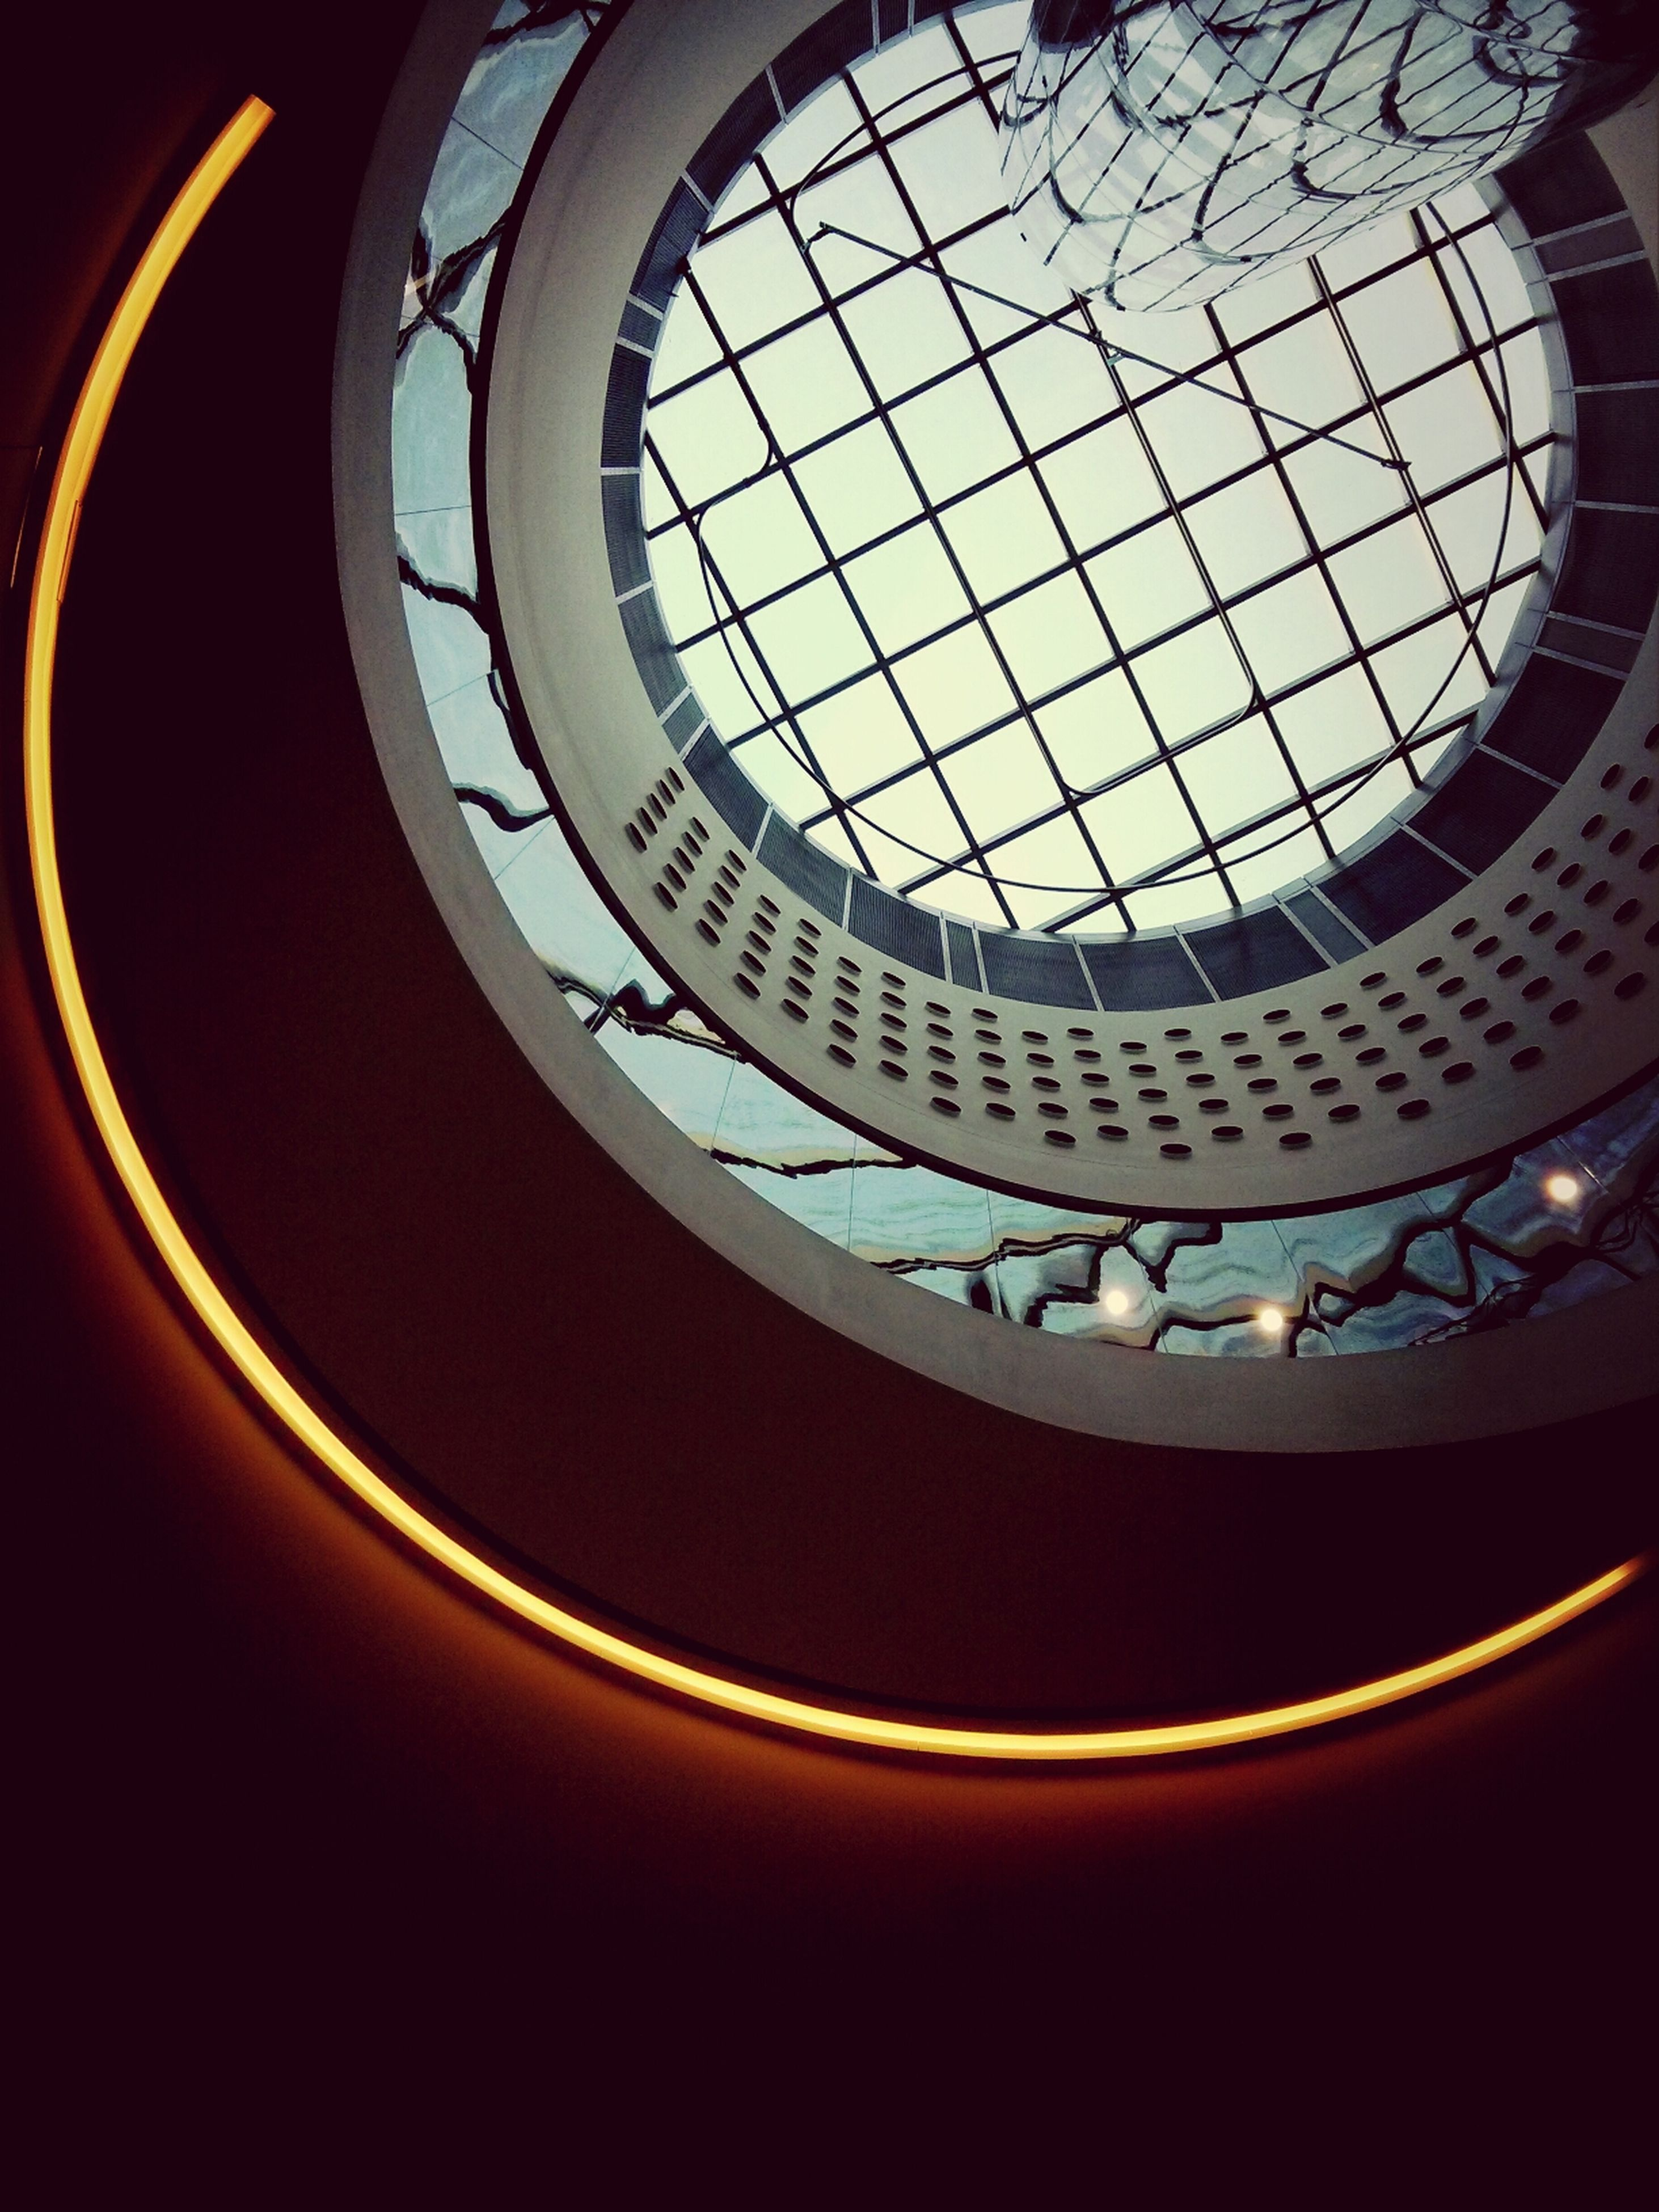 indoors, architecture, built structure, low angle view, circle, geometric shape, skylight, pattern, design, sky, window, ceiling, shape, directly below, spiral, no people, architectural feature, spiral staircase, railing, glass - material